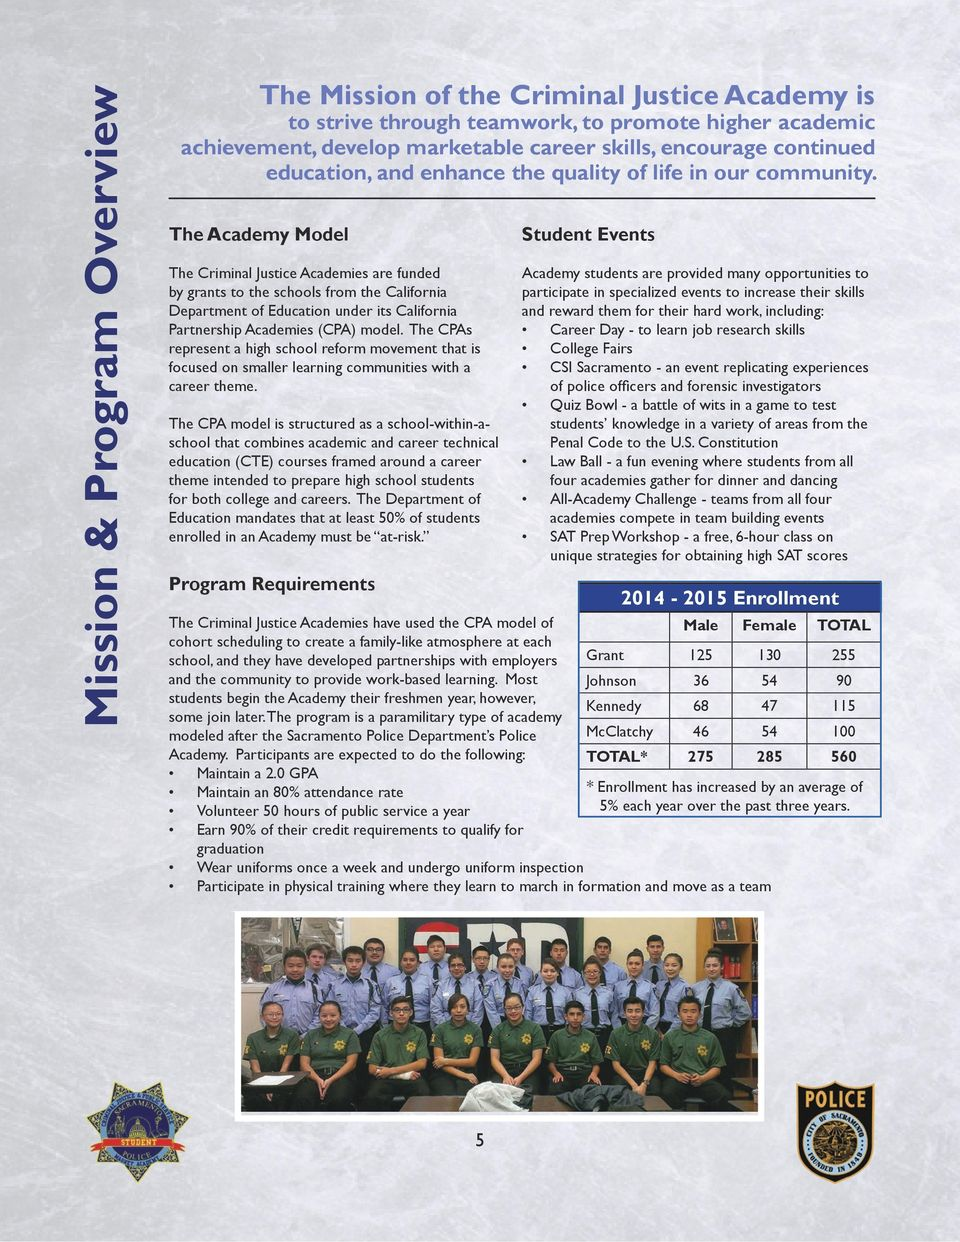 The Academy Model The Criminal Justice Academies are funded by grants to the schools from the California Department of Education under its California Partnership Academies (CPA) model.